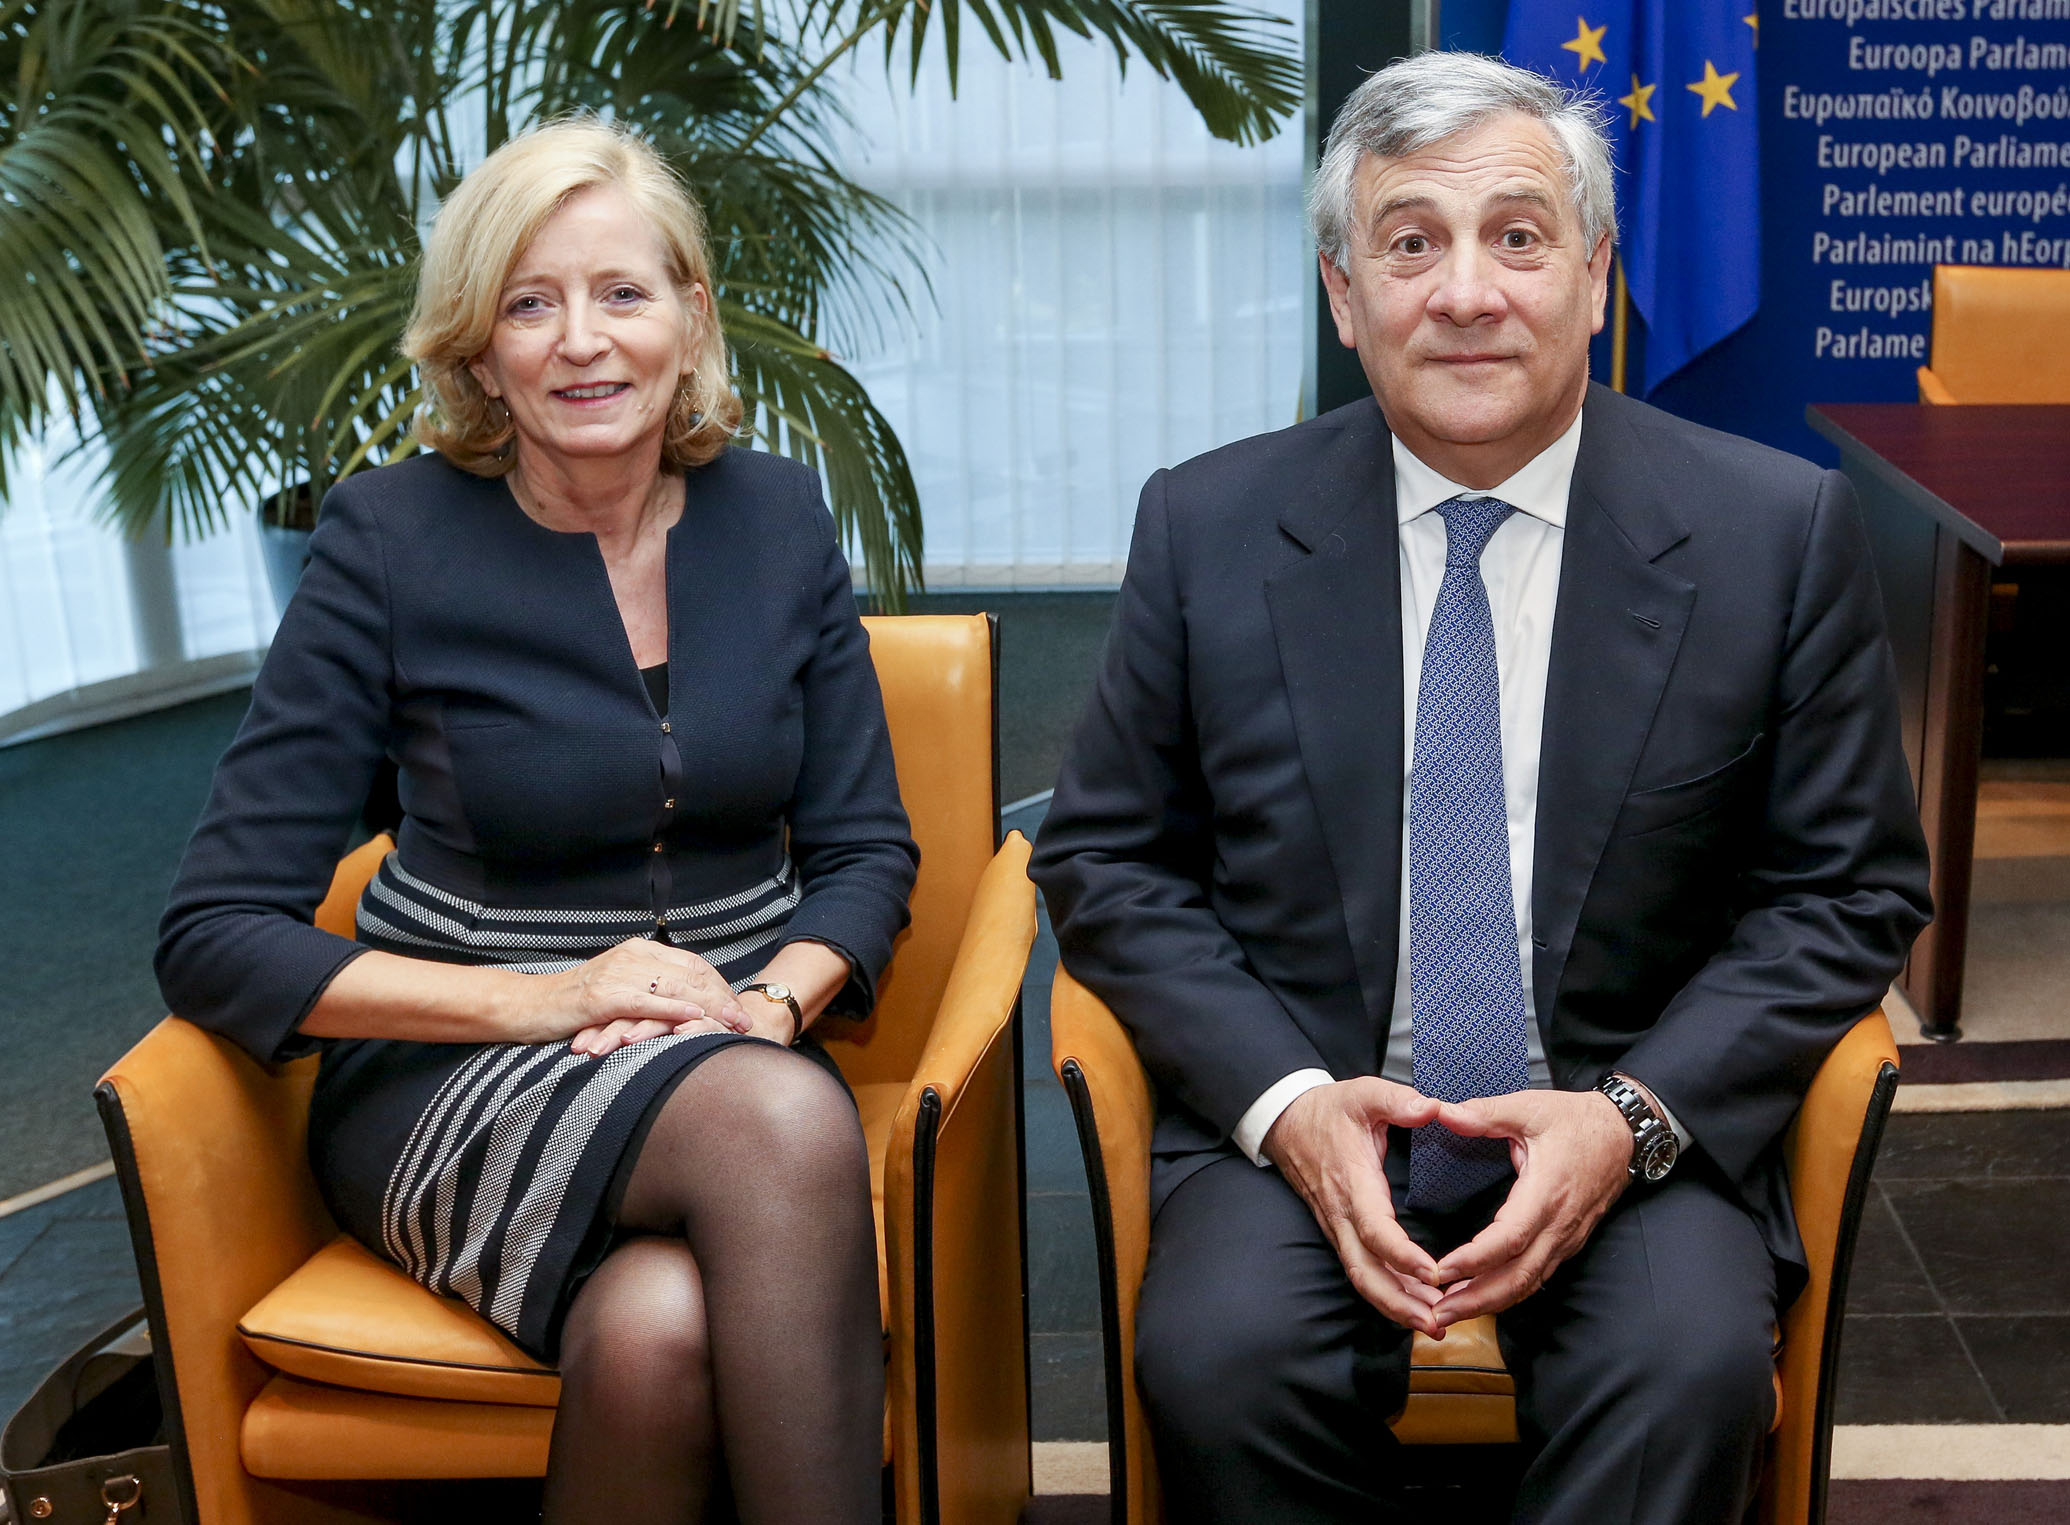 The European Ombudsman in a meeting with the President of the European Parliament, Antonio Tajani.